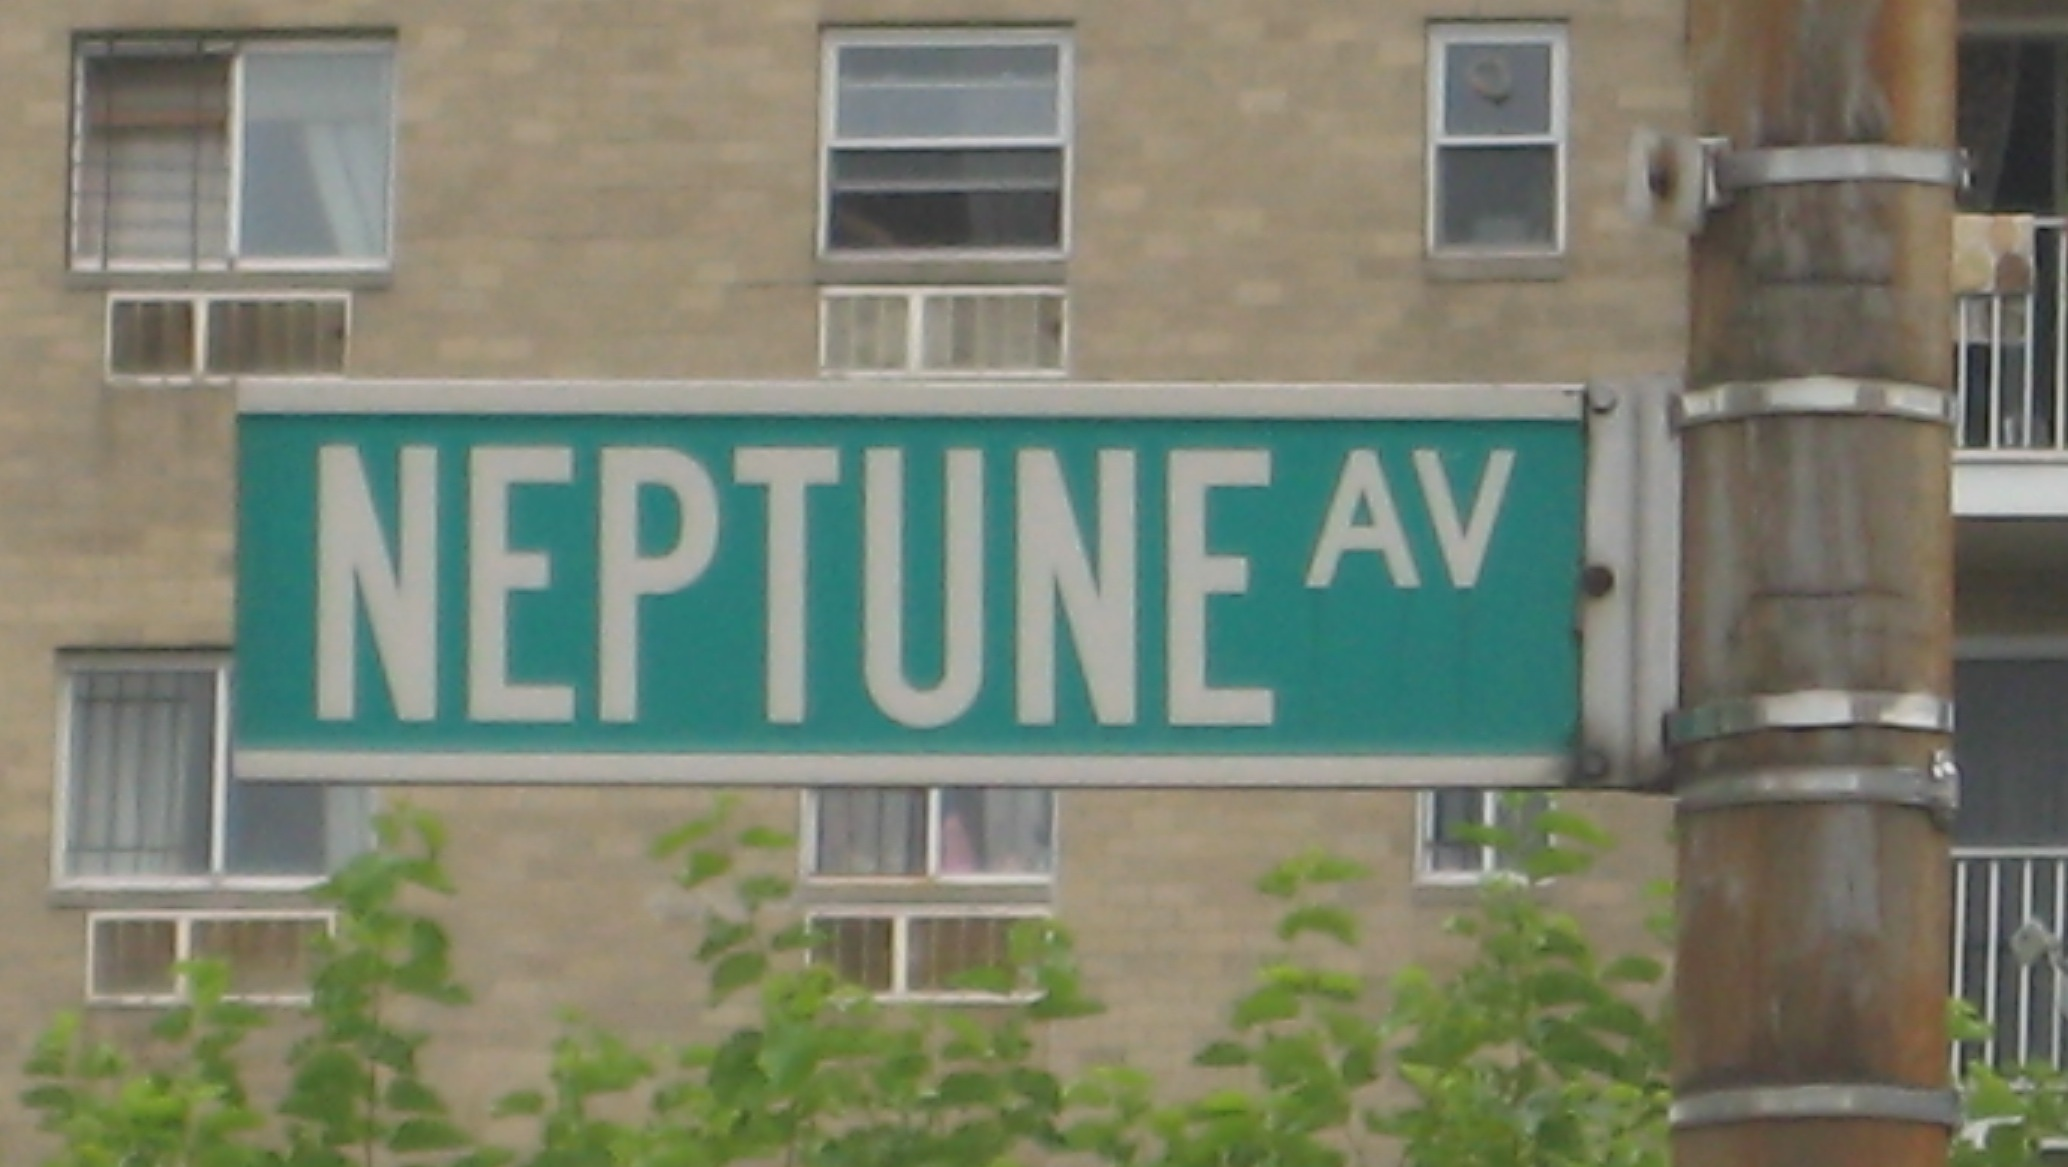 The City's Street Names